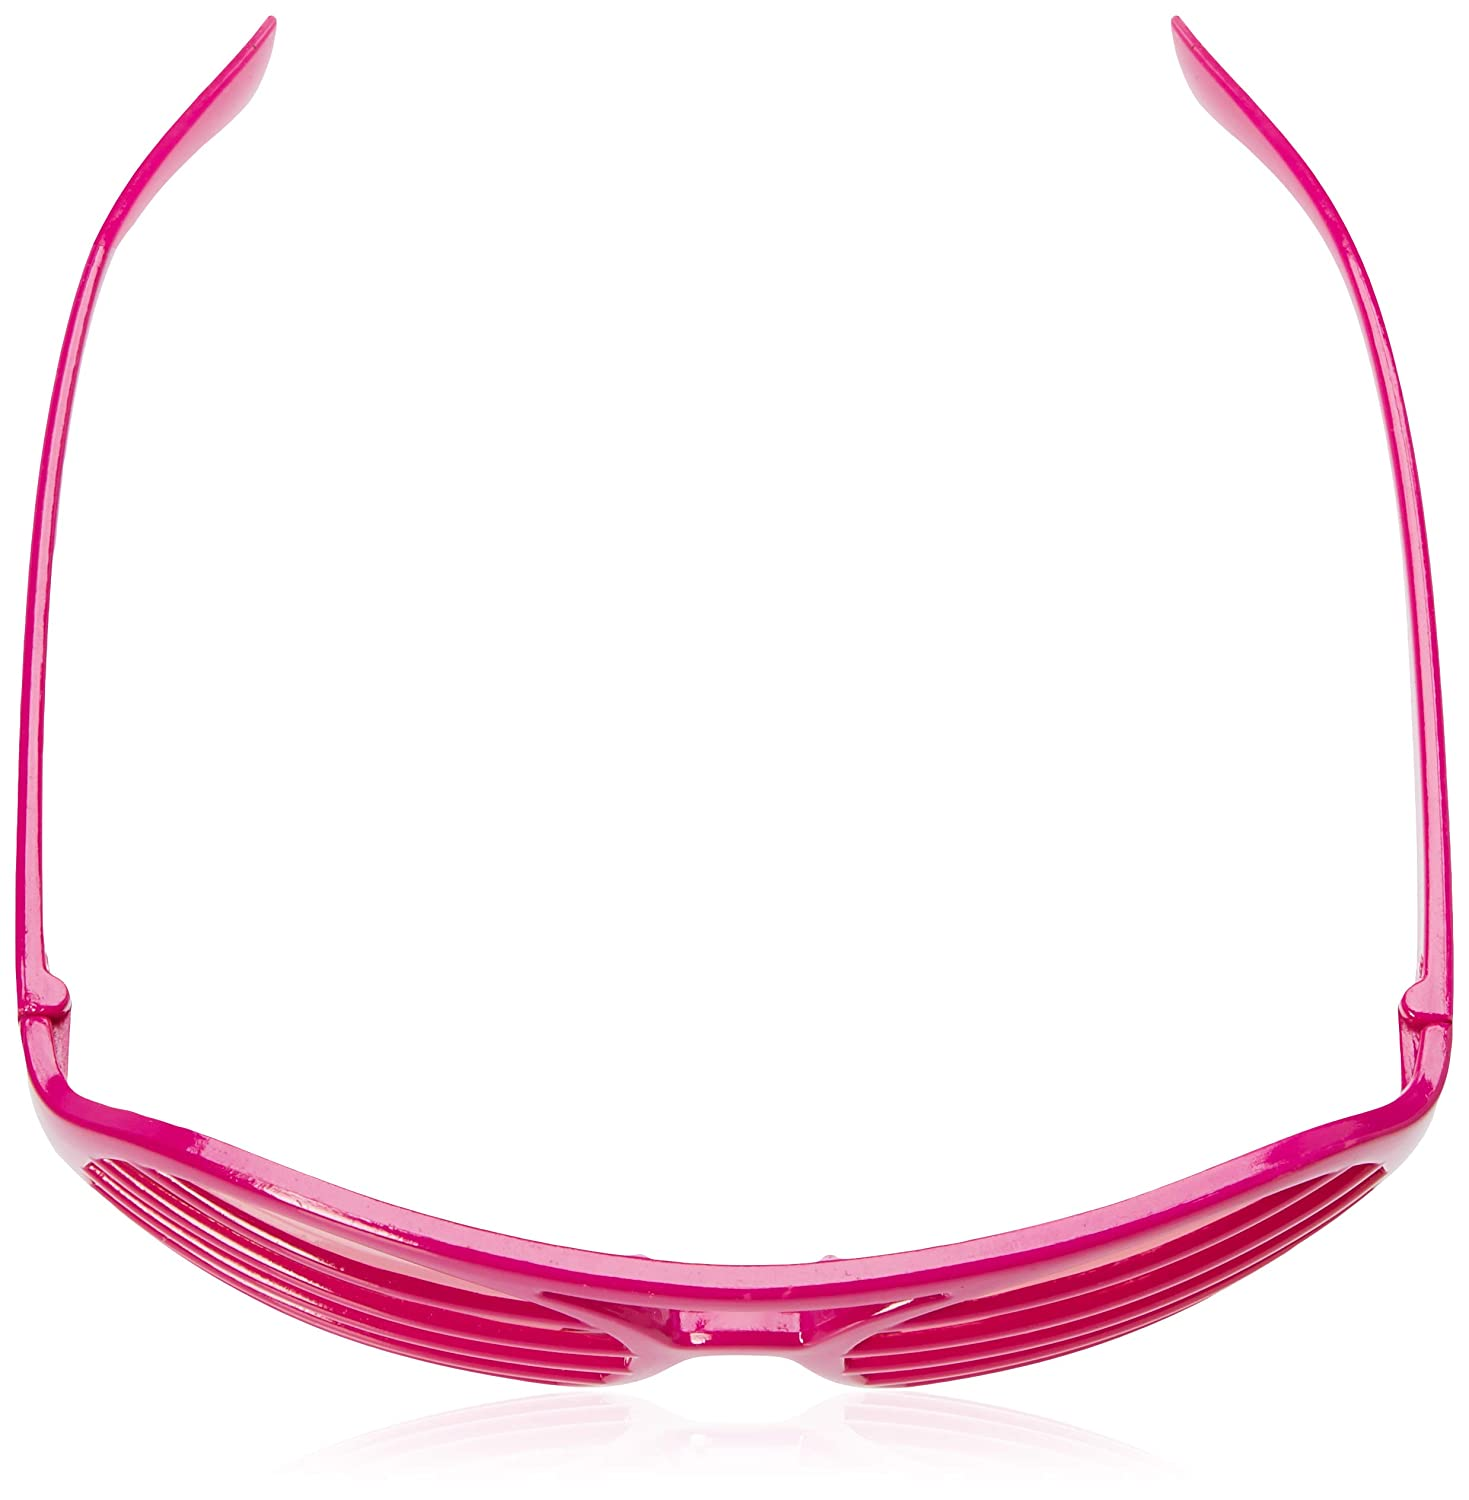 Pink Amscan Slot Eyeglasses Party Accessory